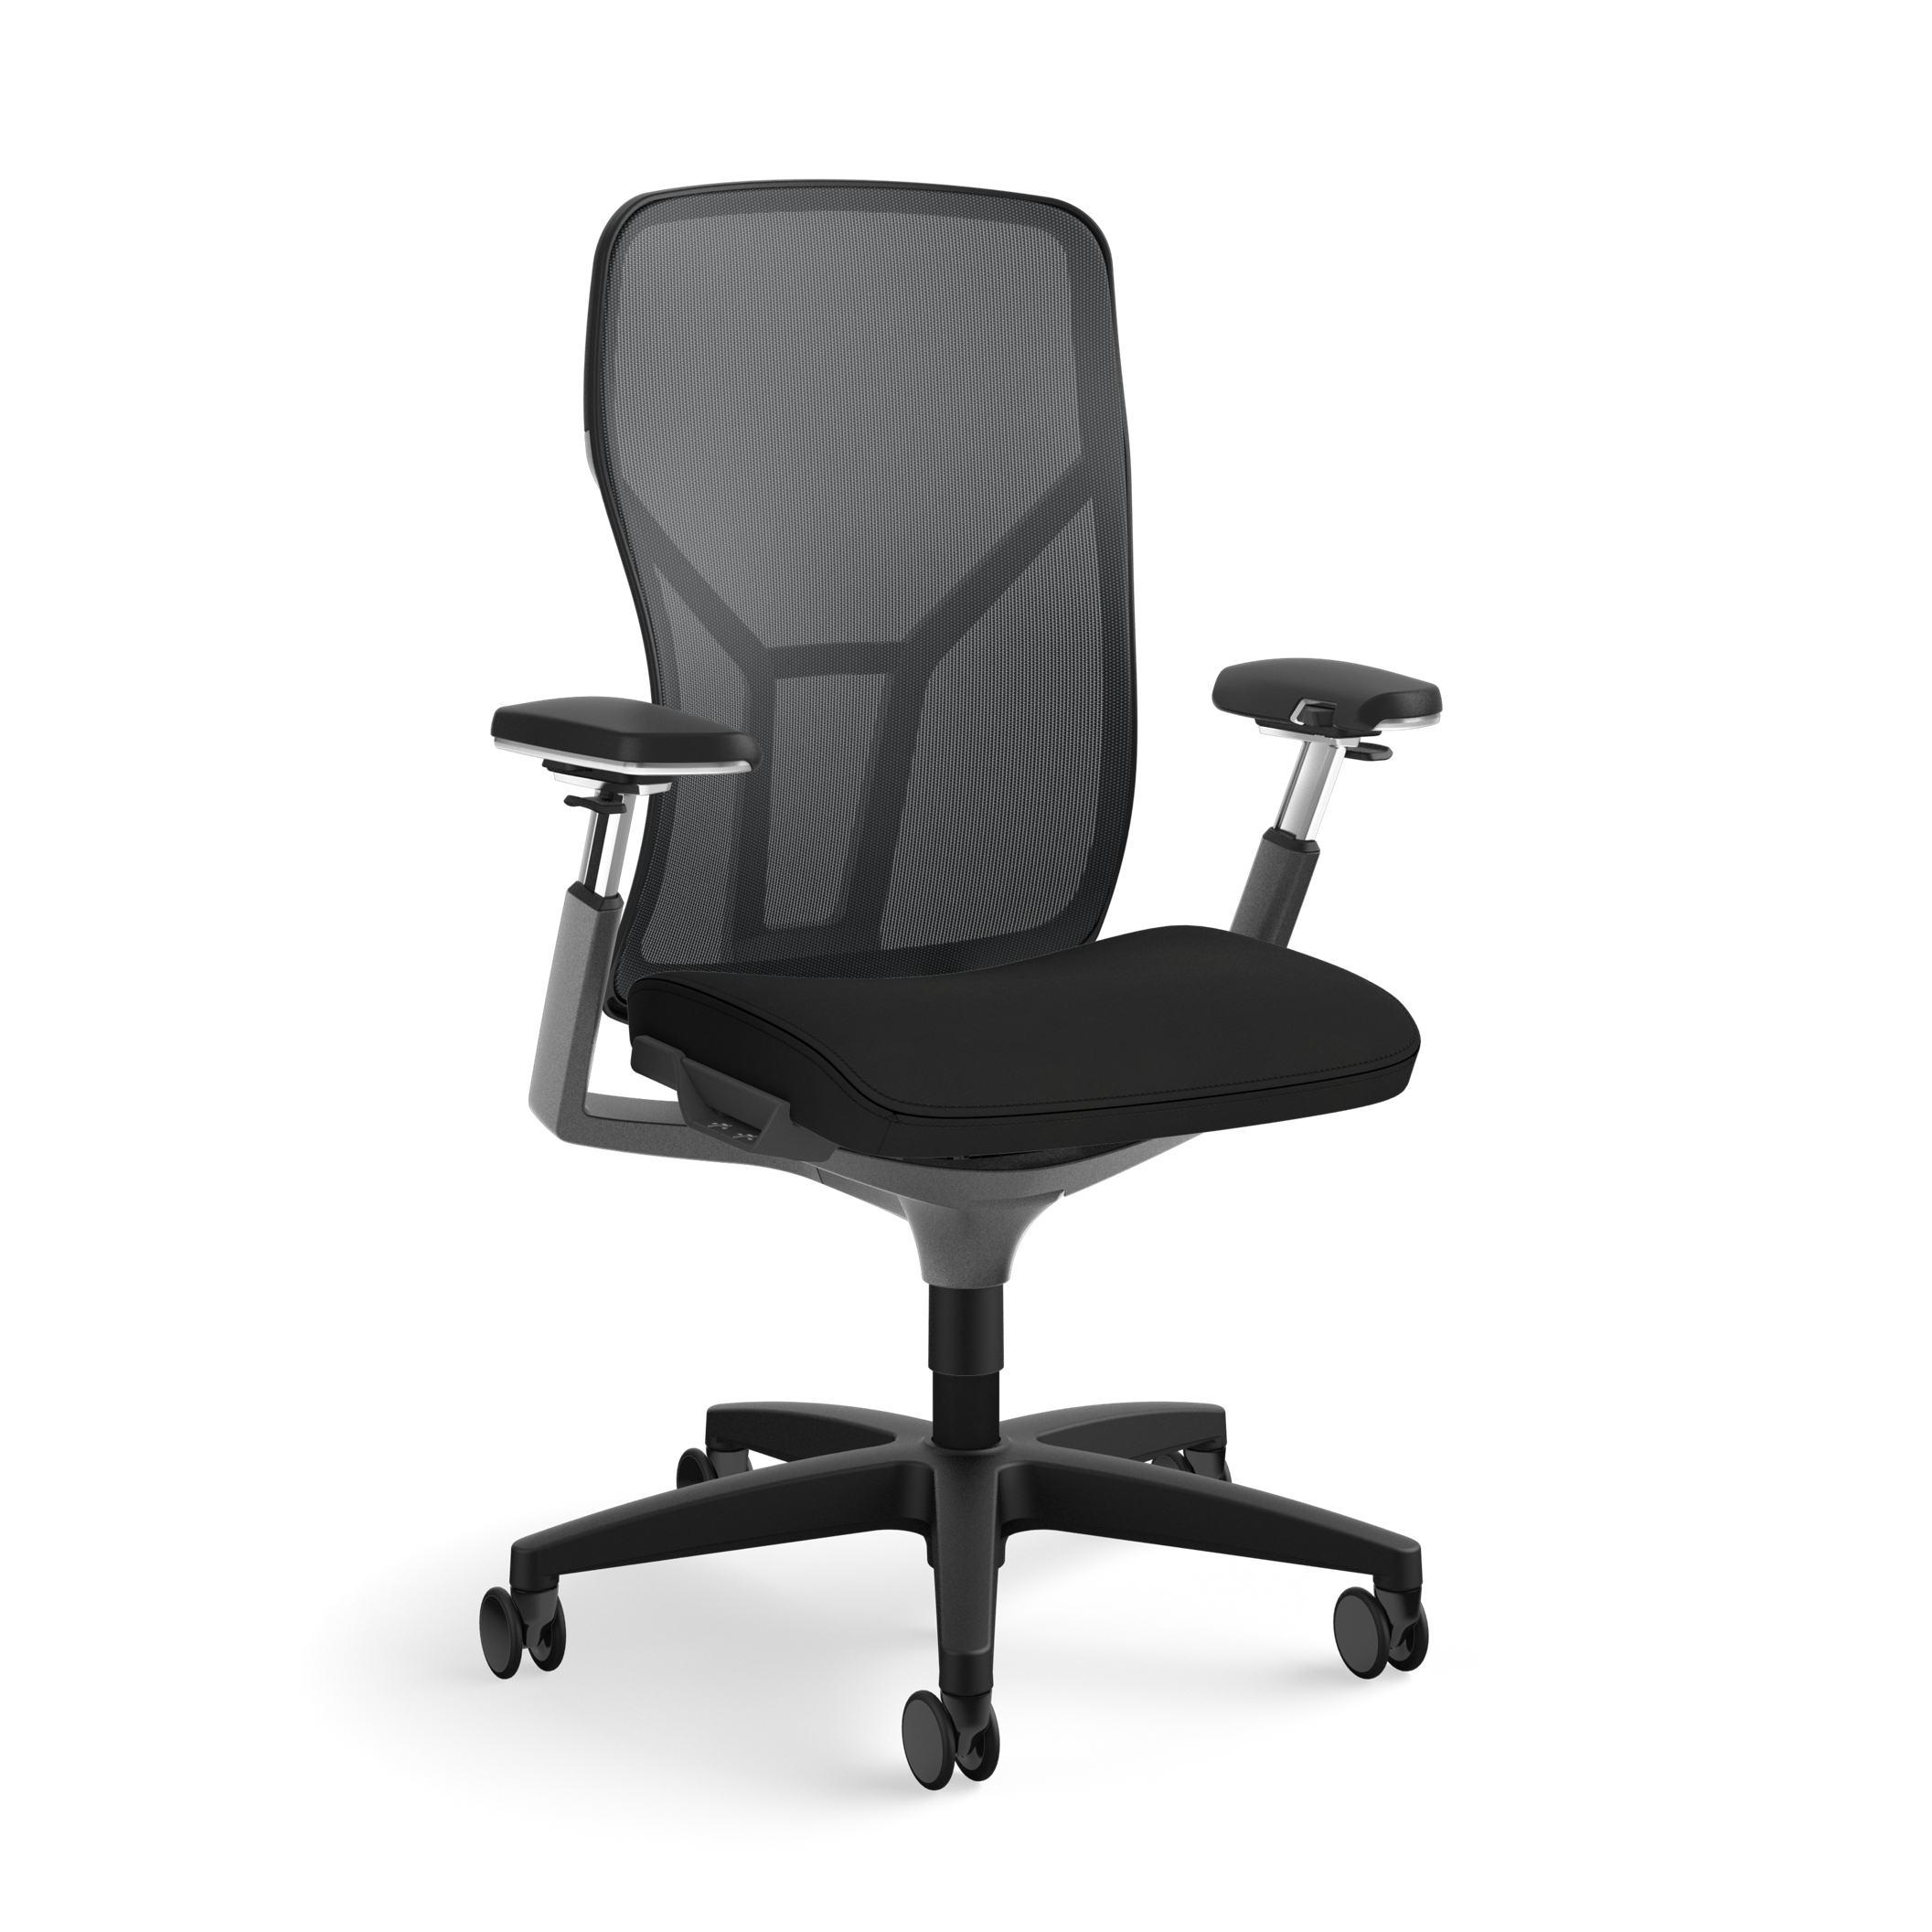 Acuity Work Conference Chair by Allsteel